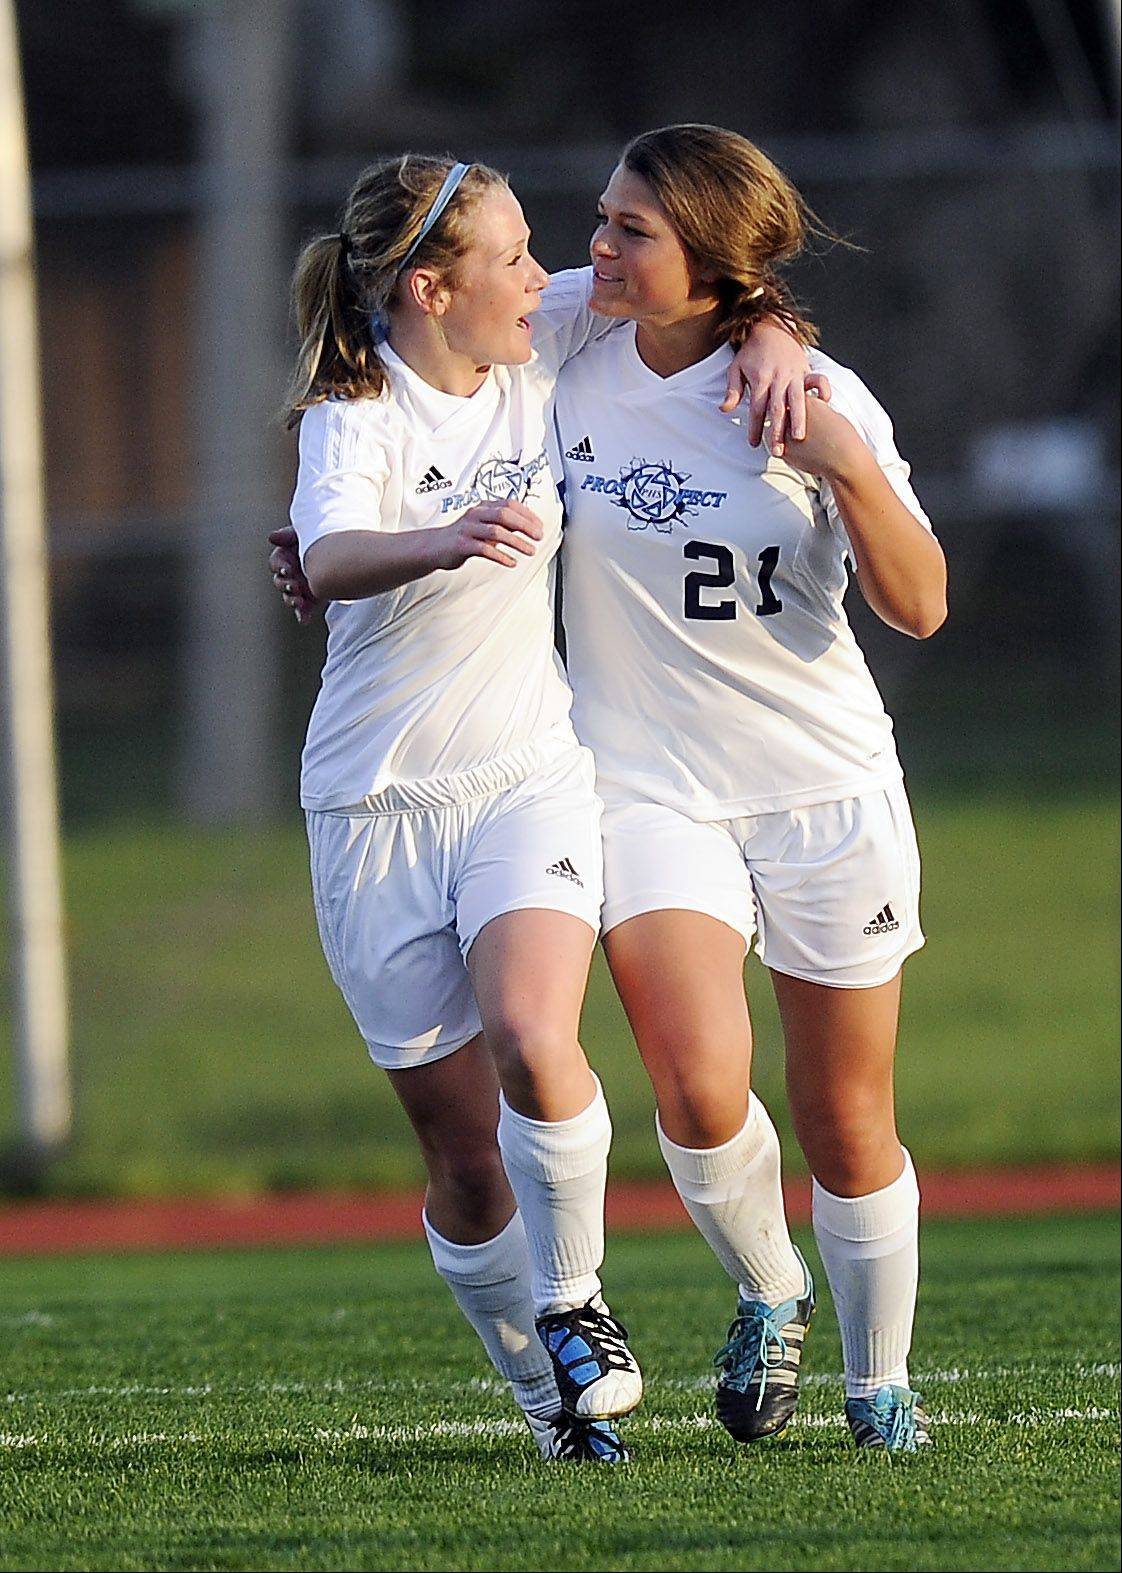 Prospect's Rachel Suarez, right, celebrates with teammate Taylor Smith after Suarez's goal during Monday's soccer game in Mount Prospect.